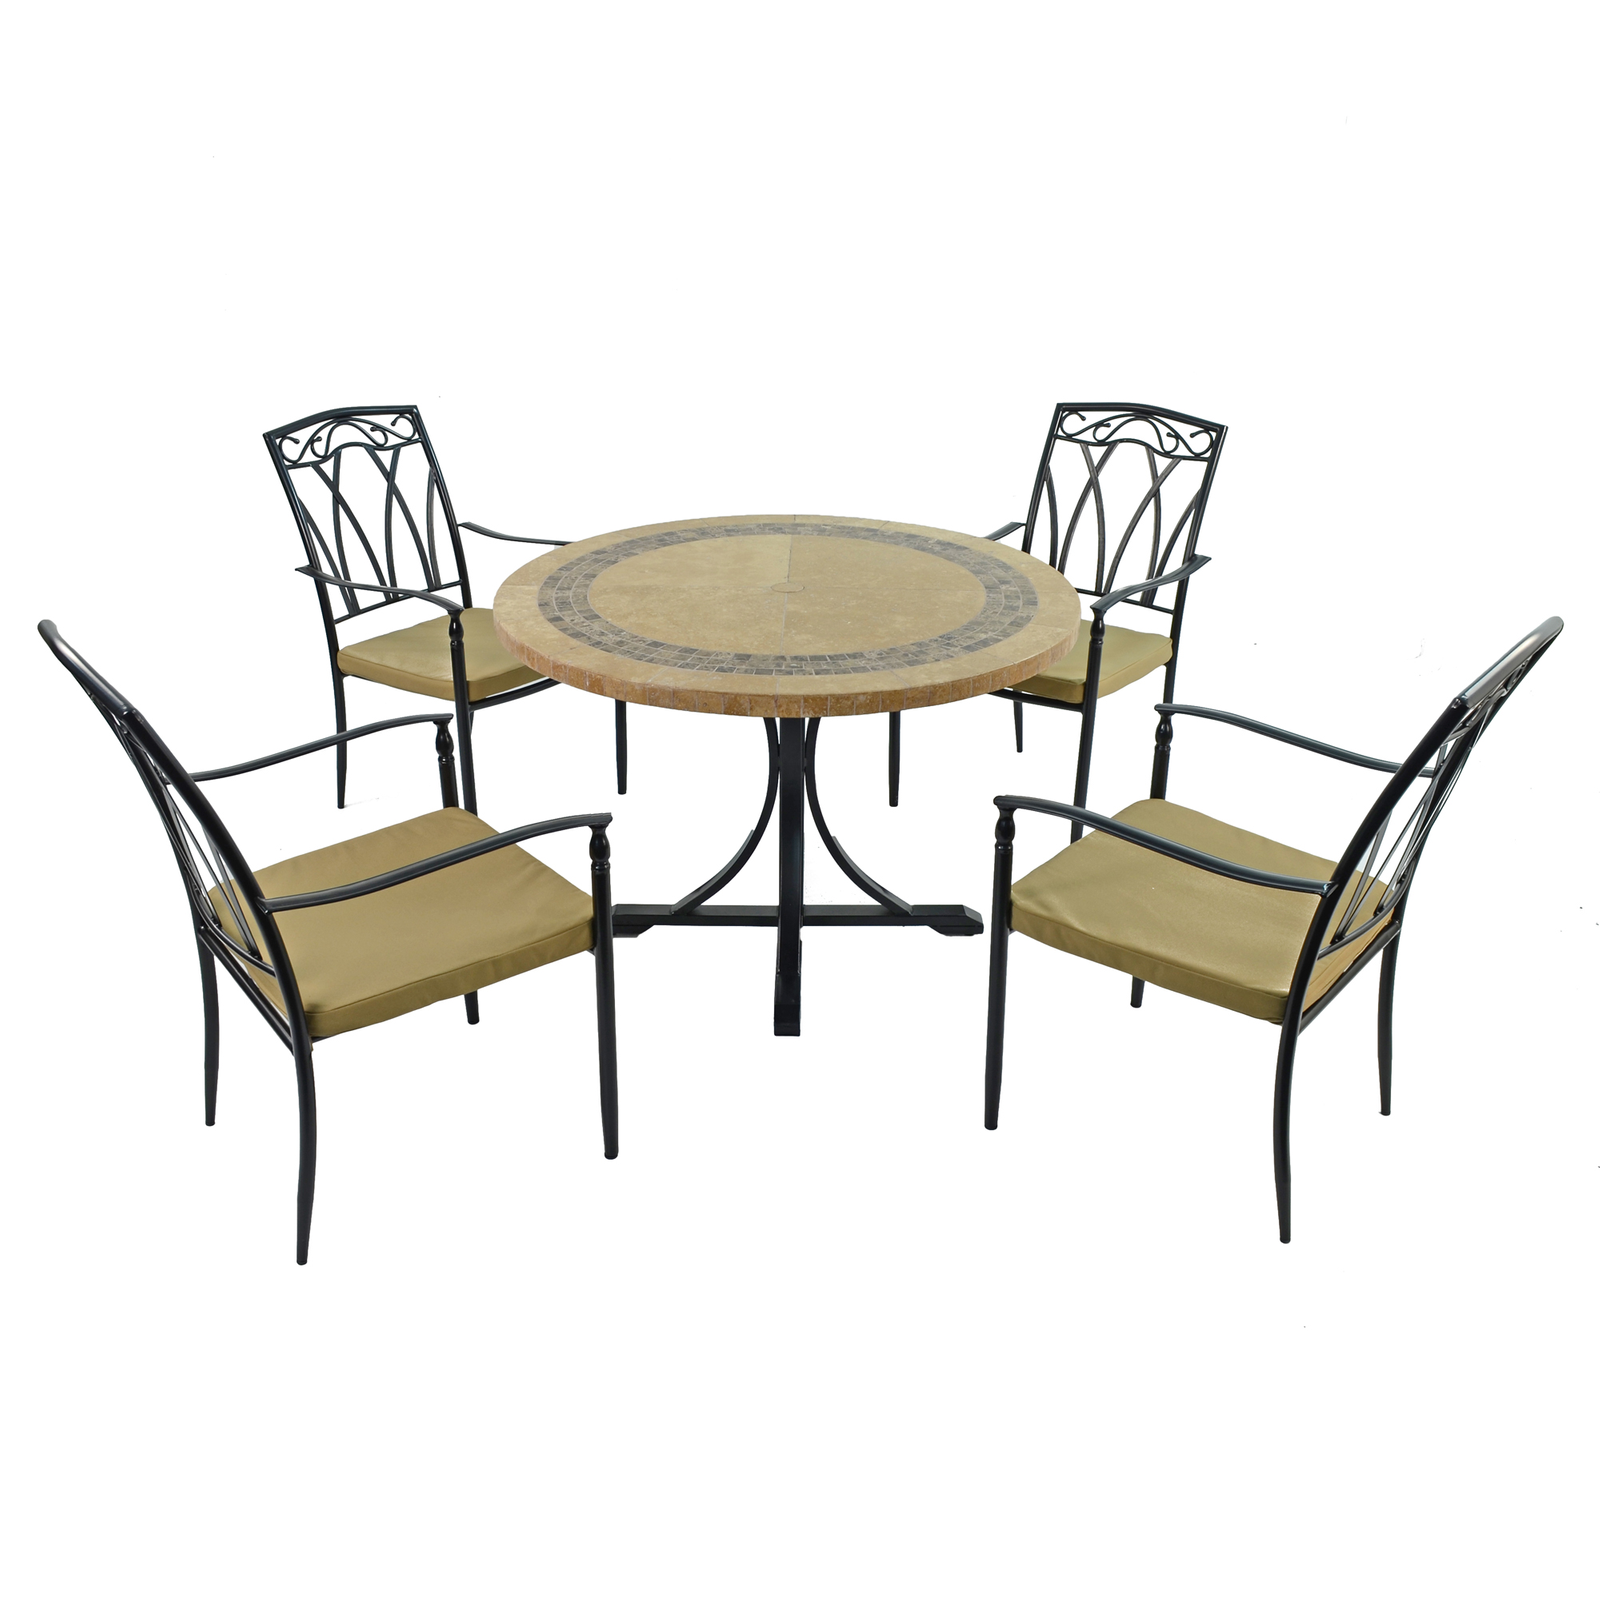 Byron Manor Vermont Dining Table With 4 Ascot Chairs